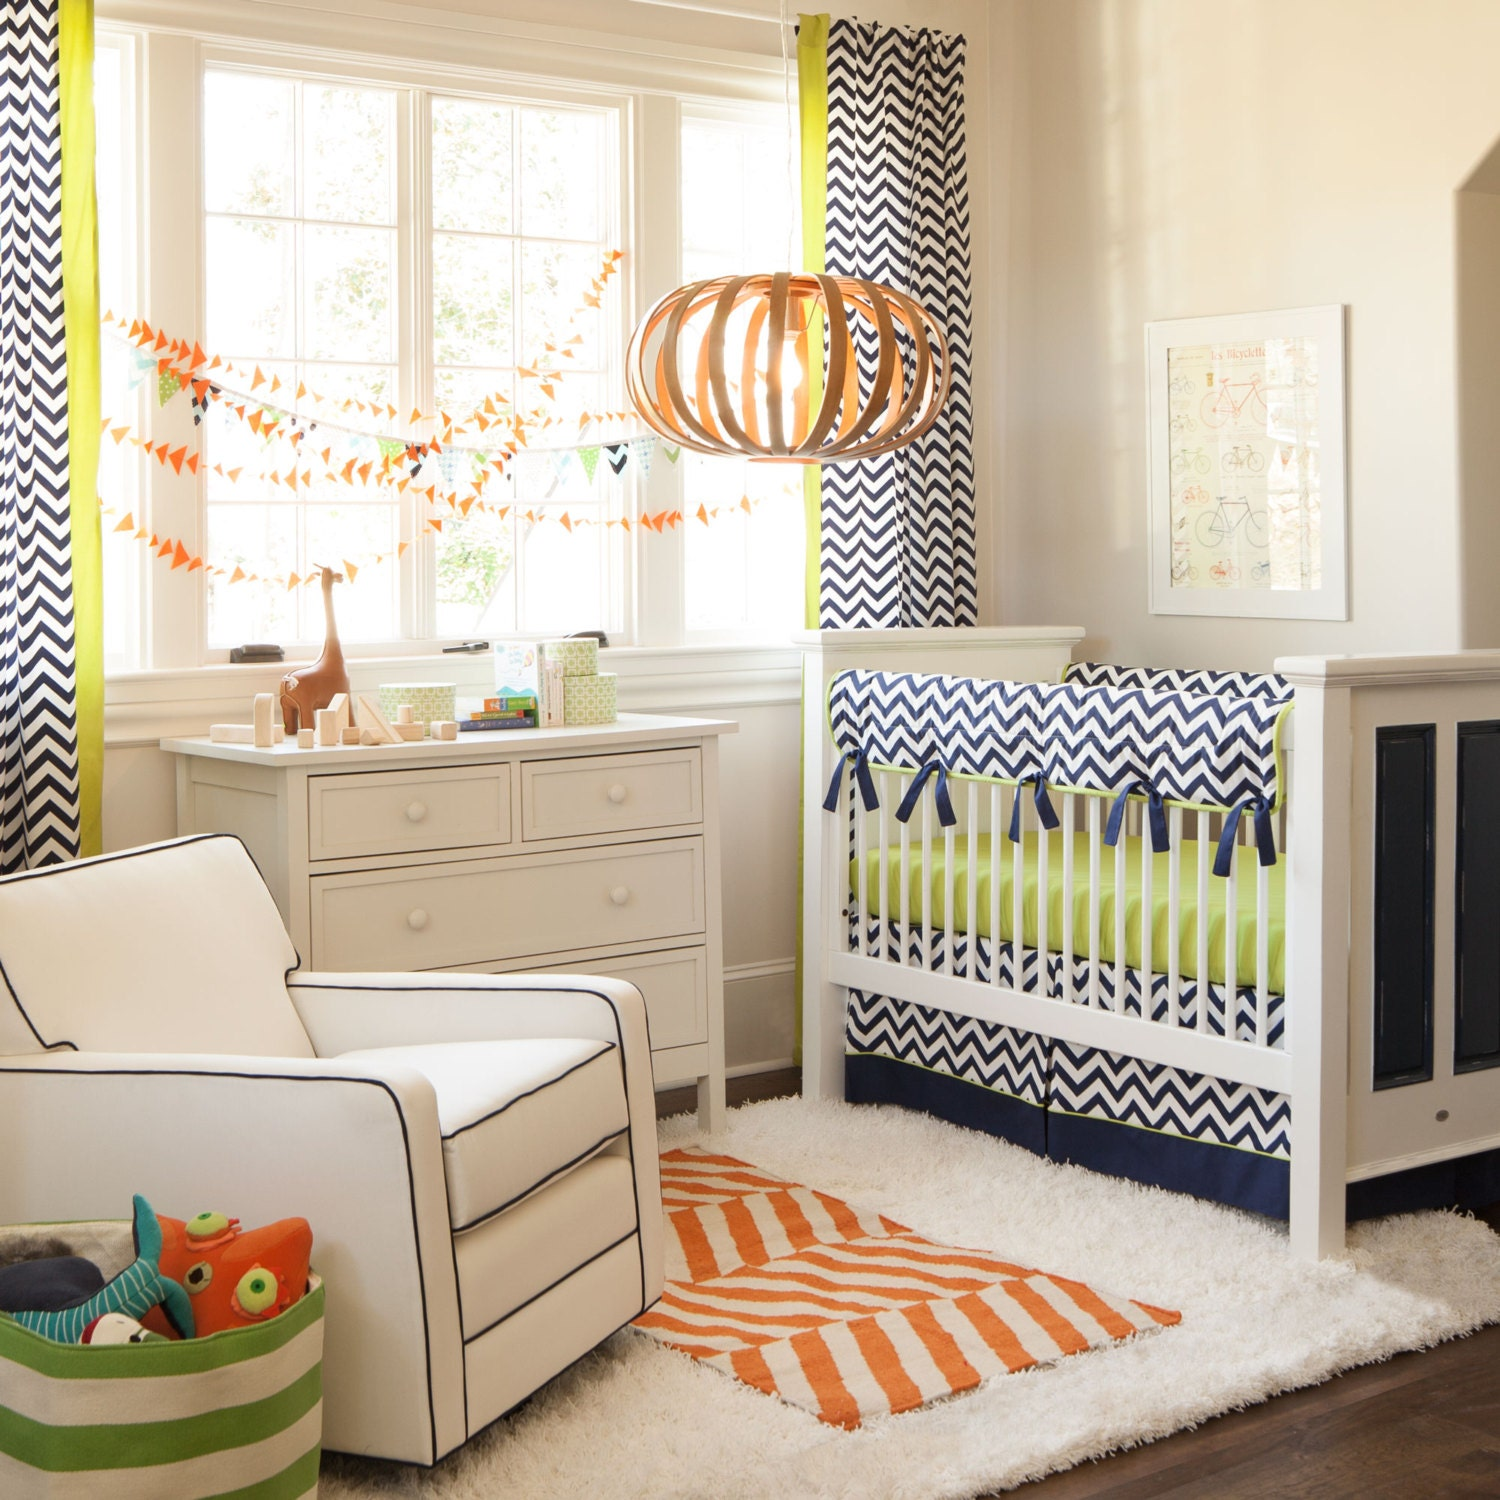 Baby cribs bedding for boys -  Zoom